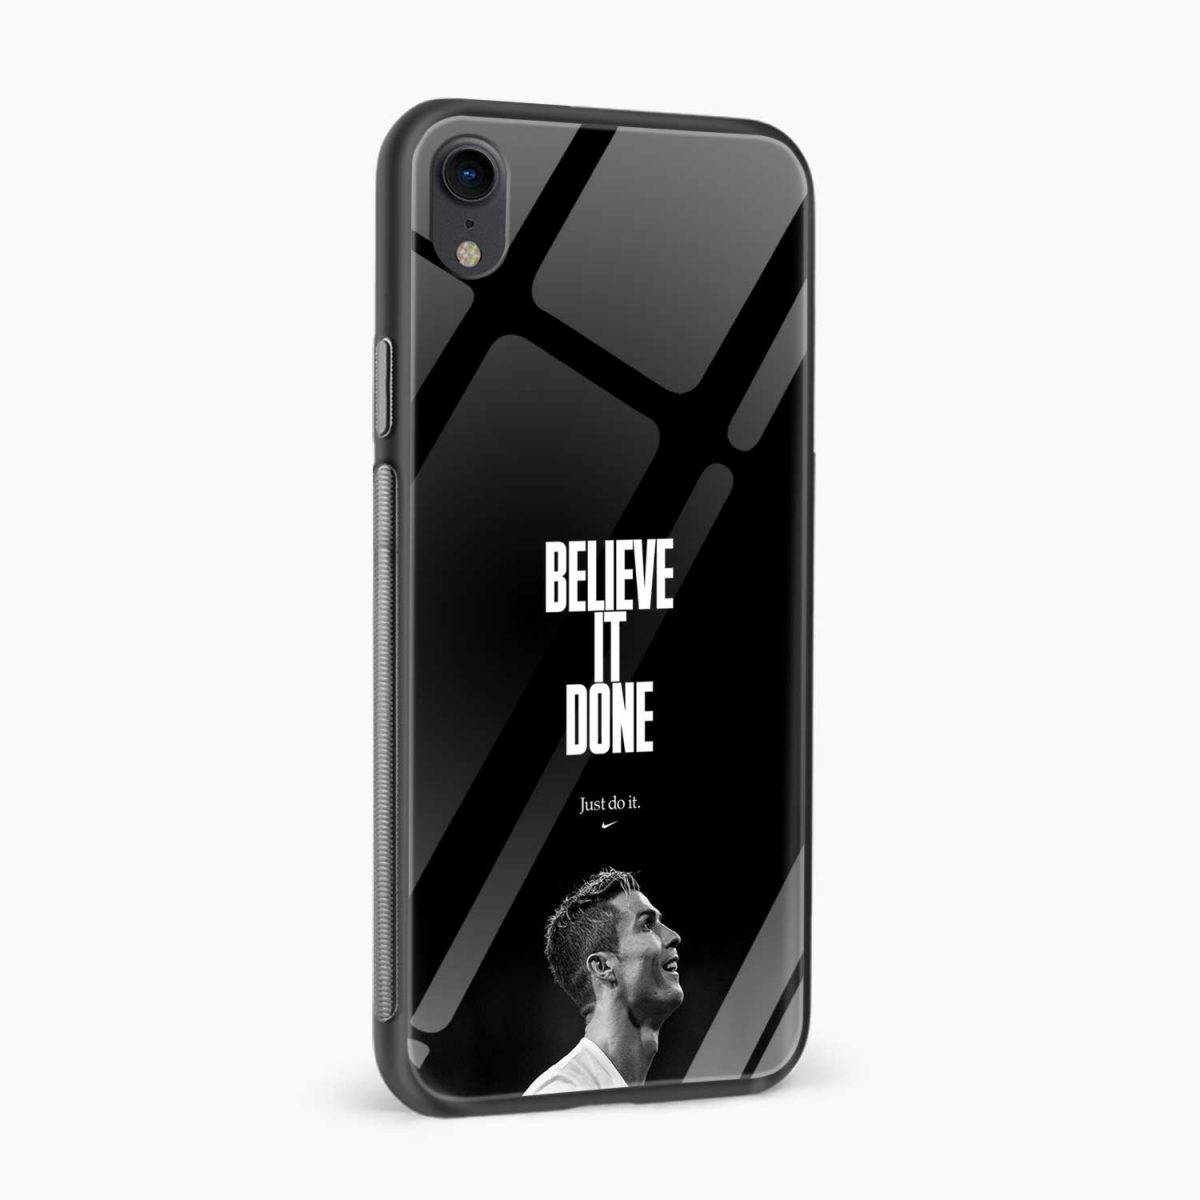 christiano ronaldo black white apple iphone xr back cover side view